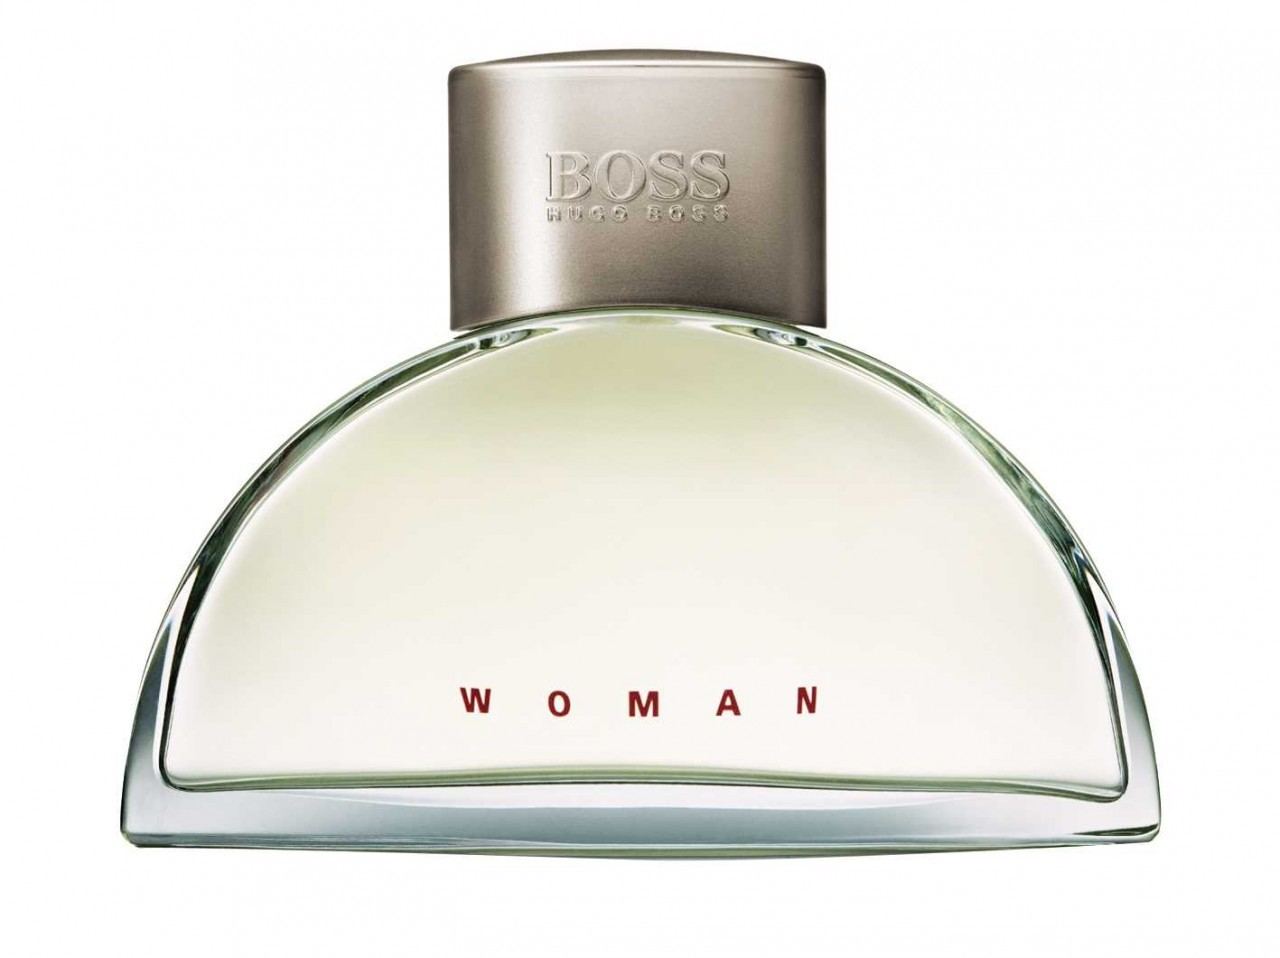 Woman eau de parfum female